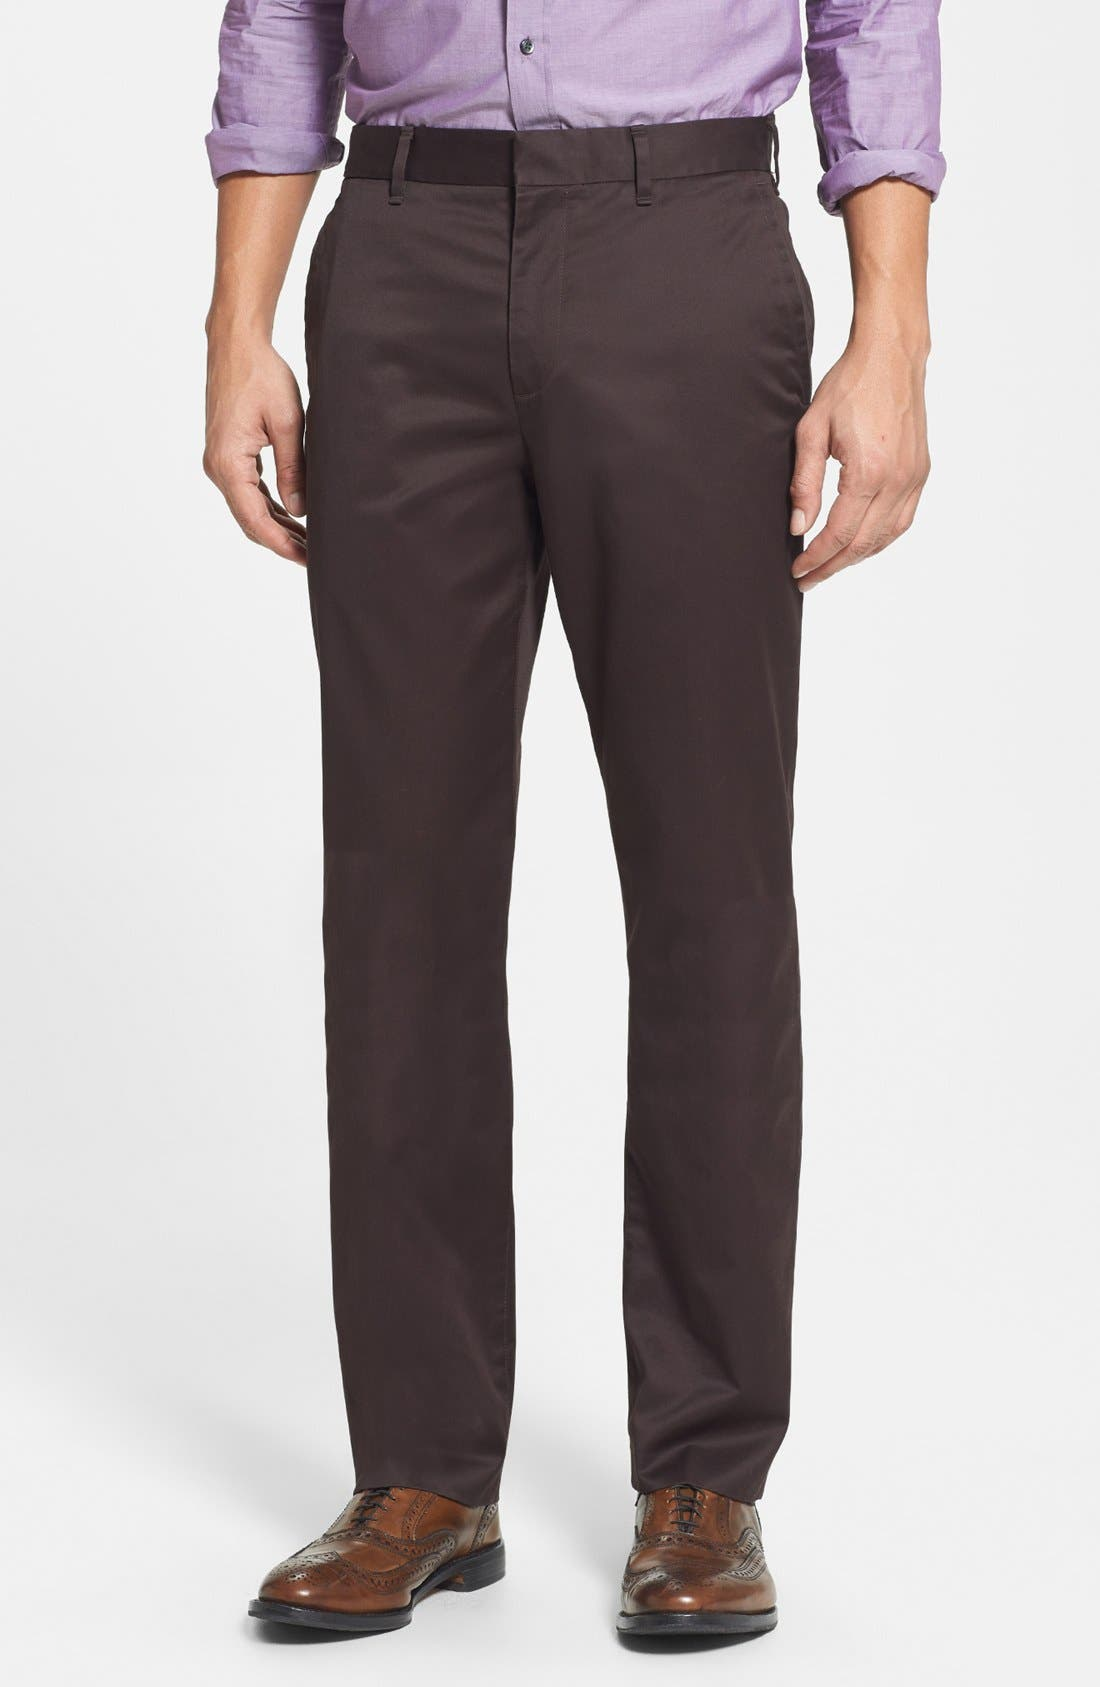 Bonobos 'Weekday Warriors' Non-Iron Straight Leg Cotton Pants